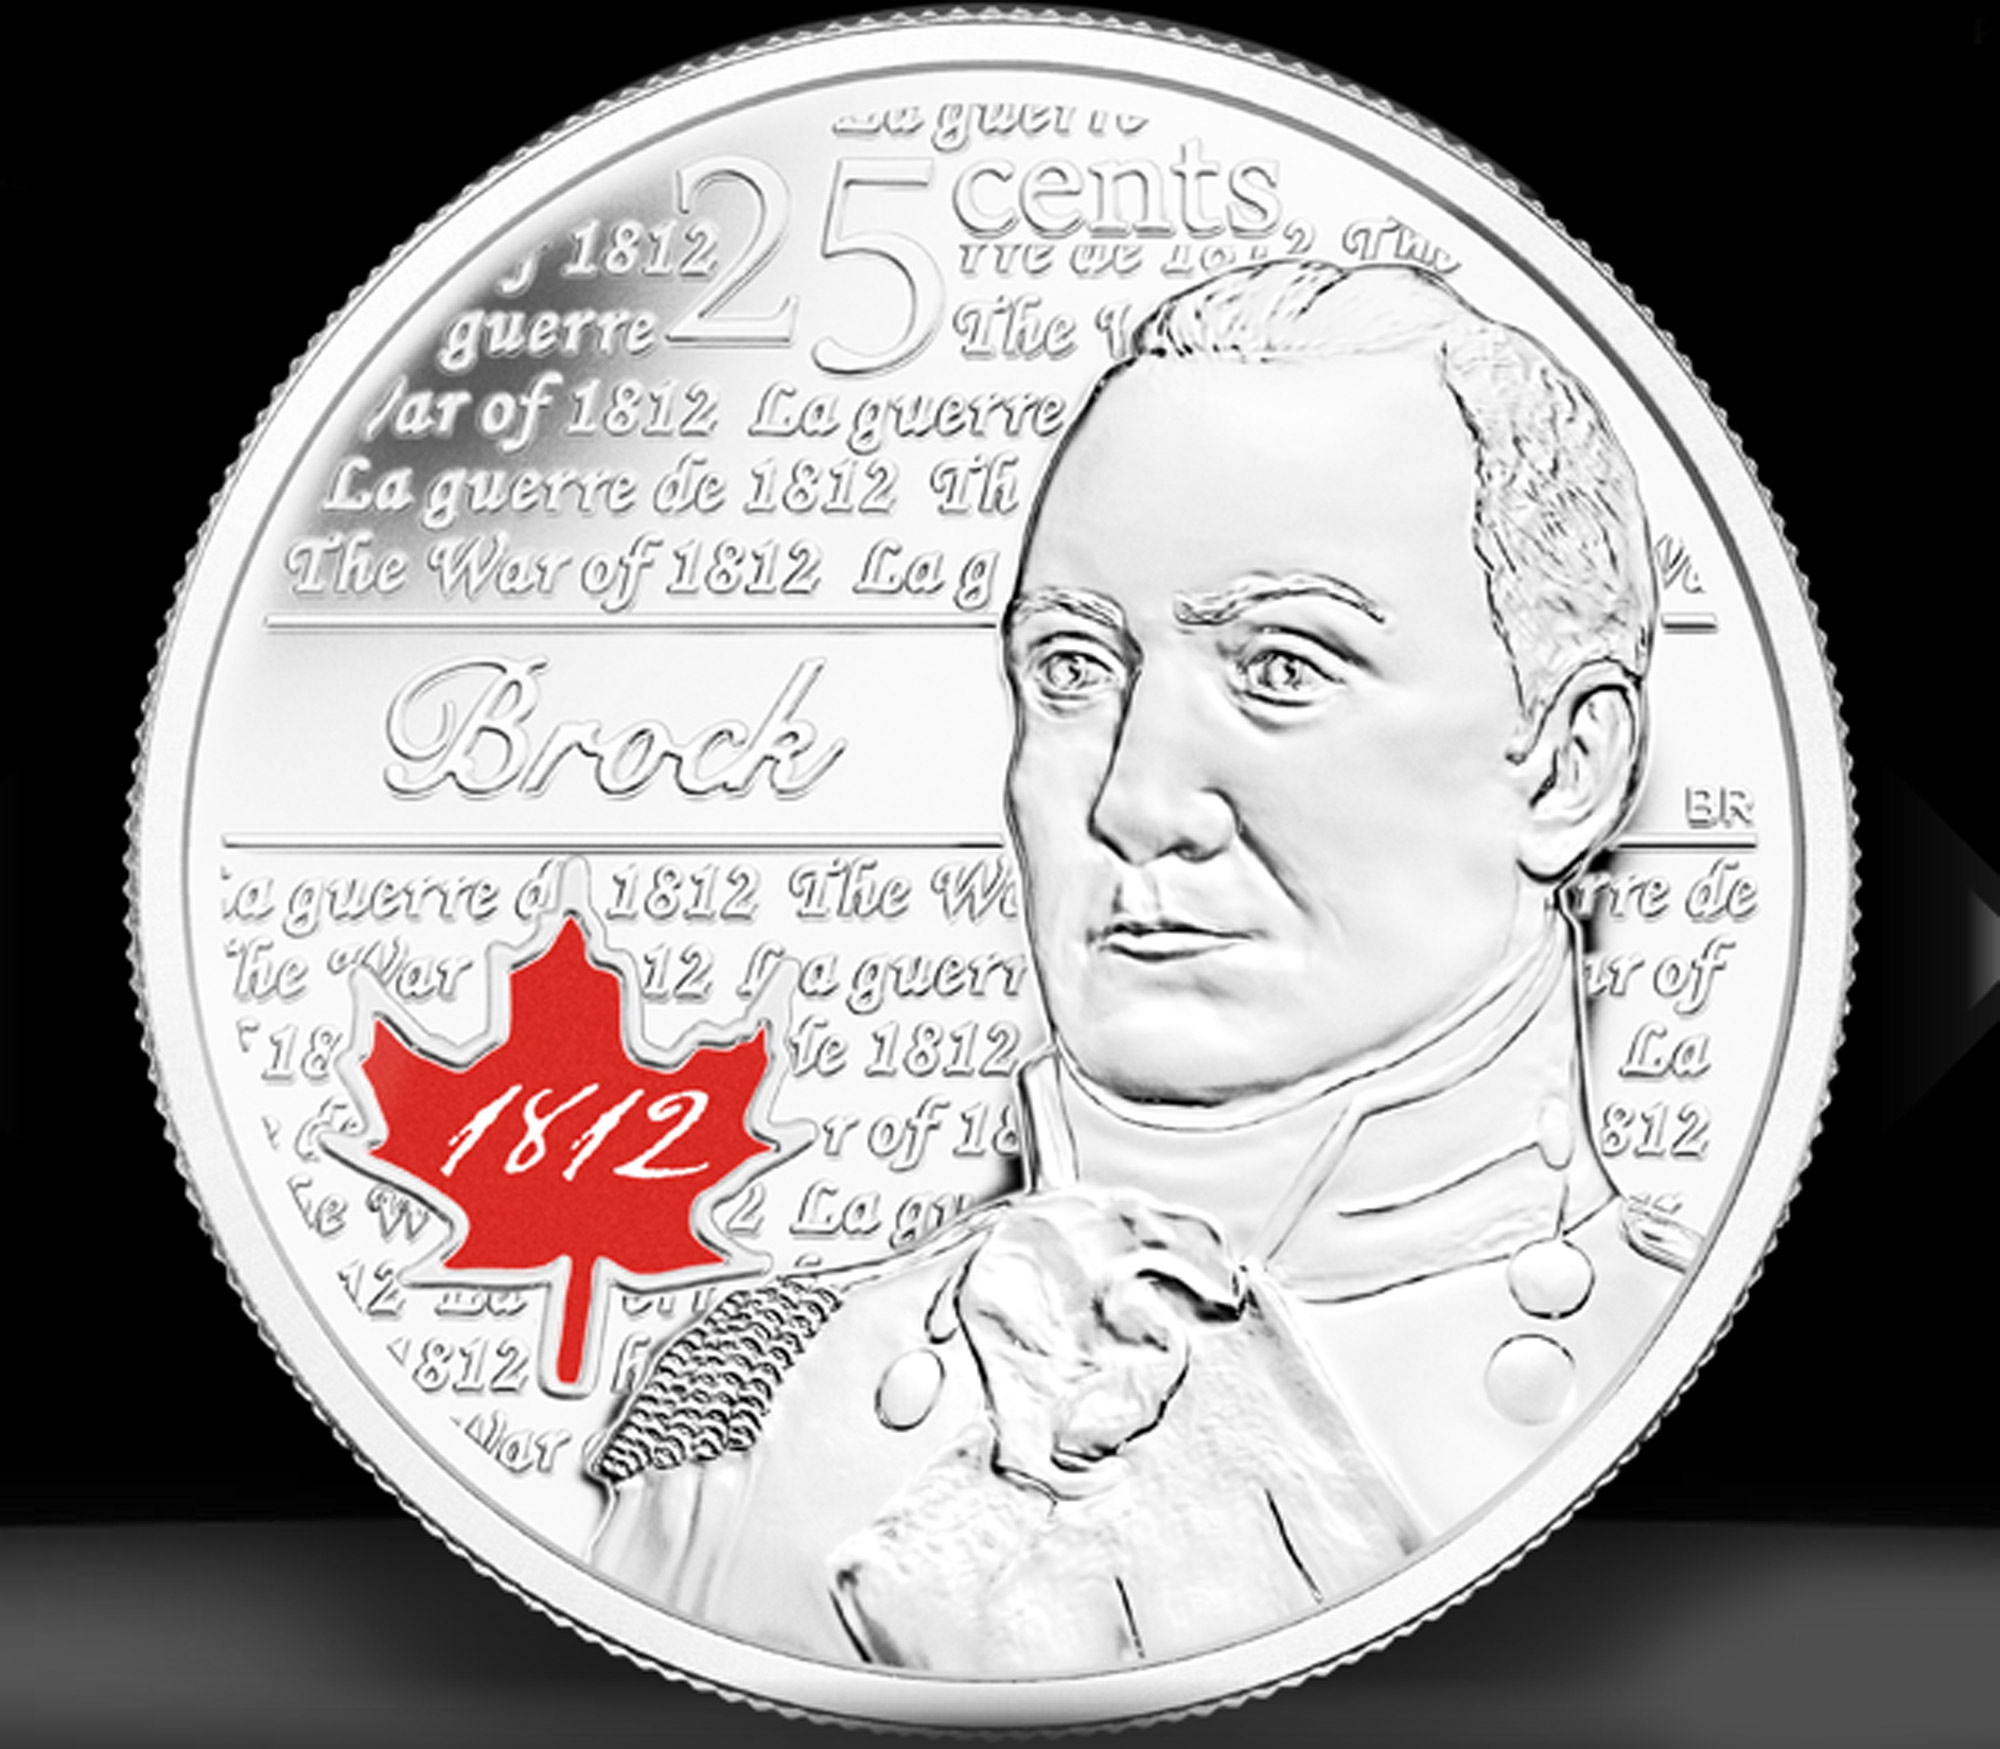 Worksheet Canadian Quarters the isaac brock society congratulations sir coin of upper